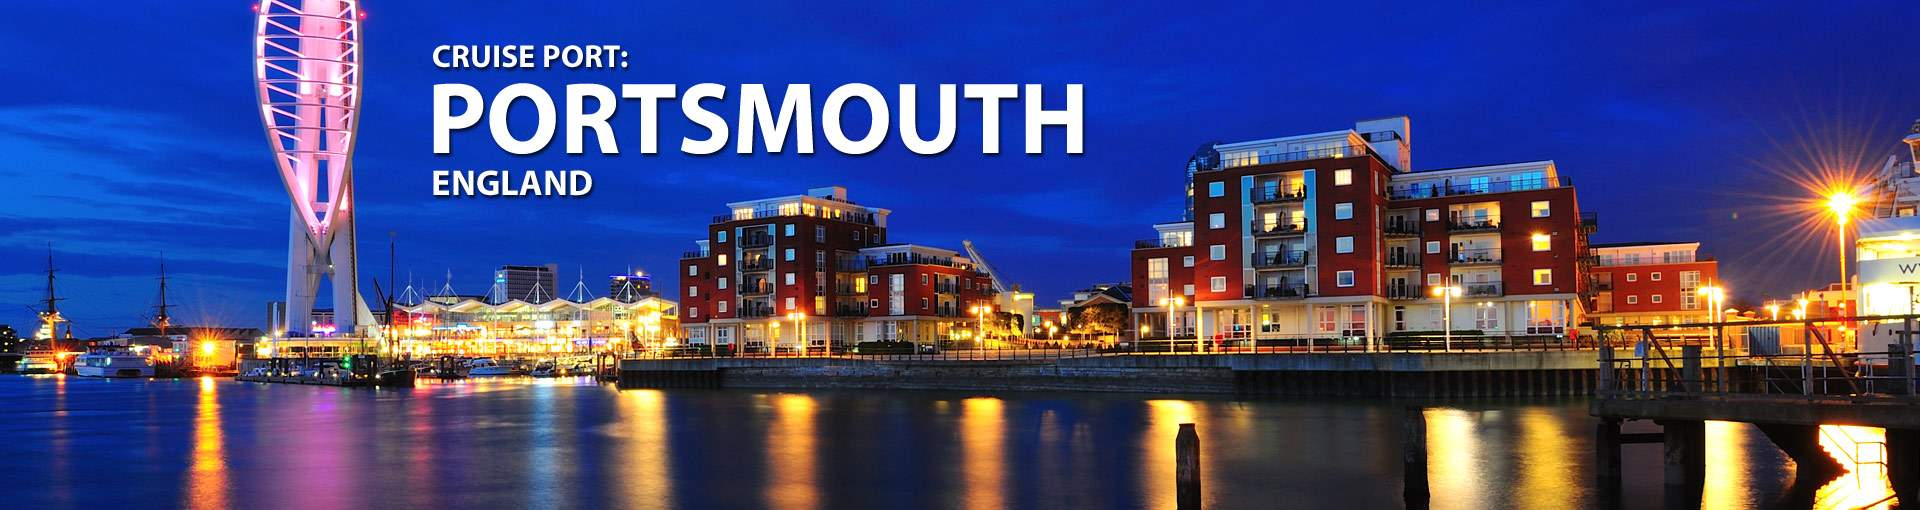 Cruises from Portsmouth, England